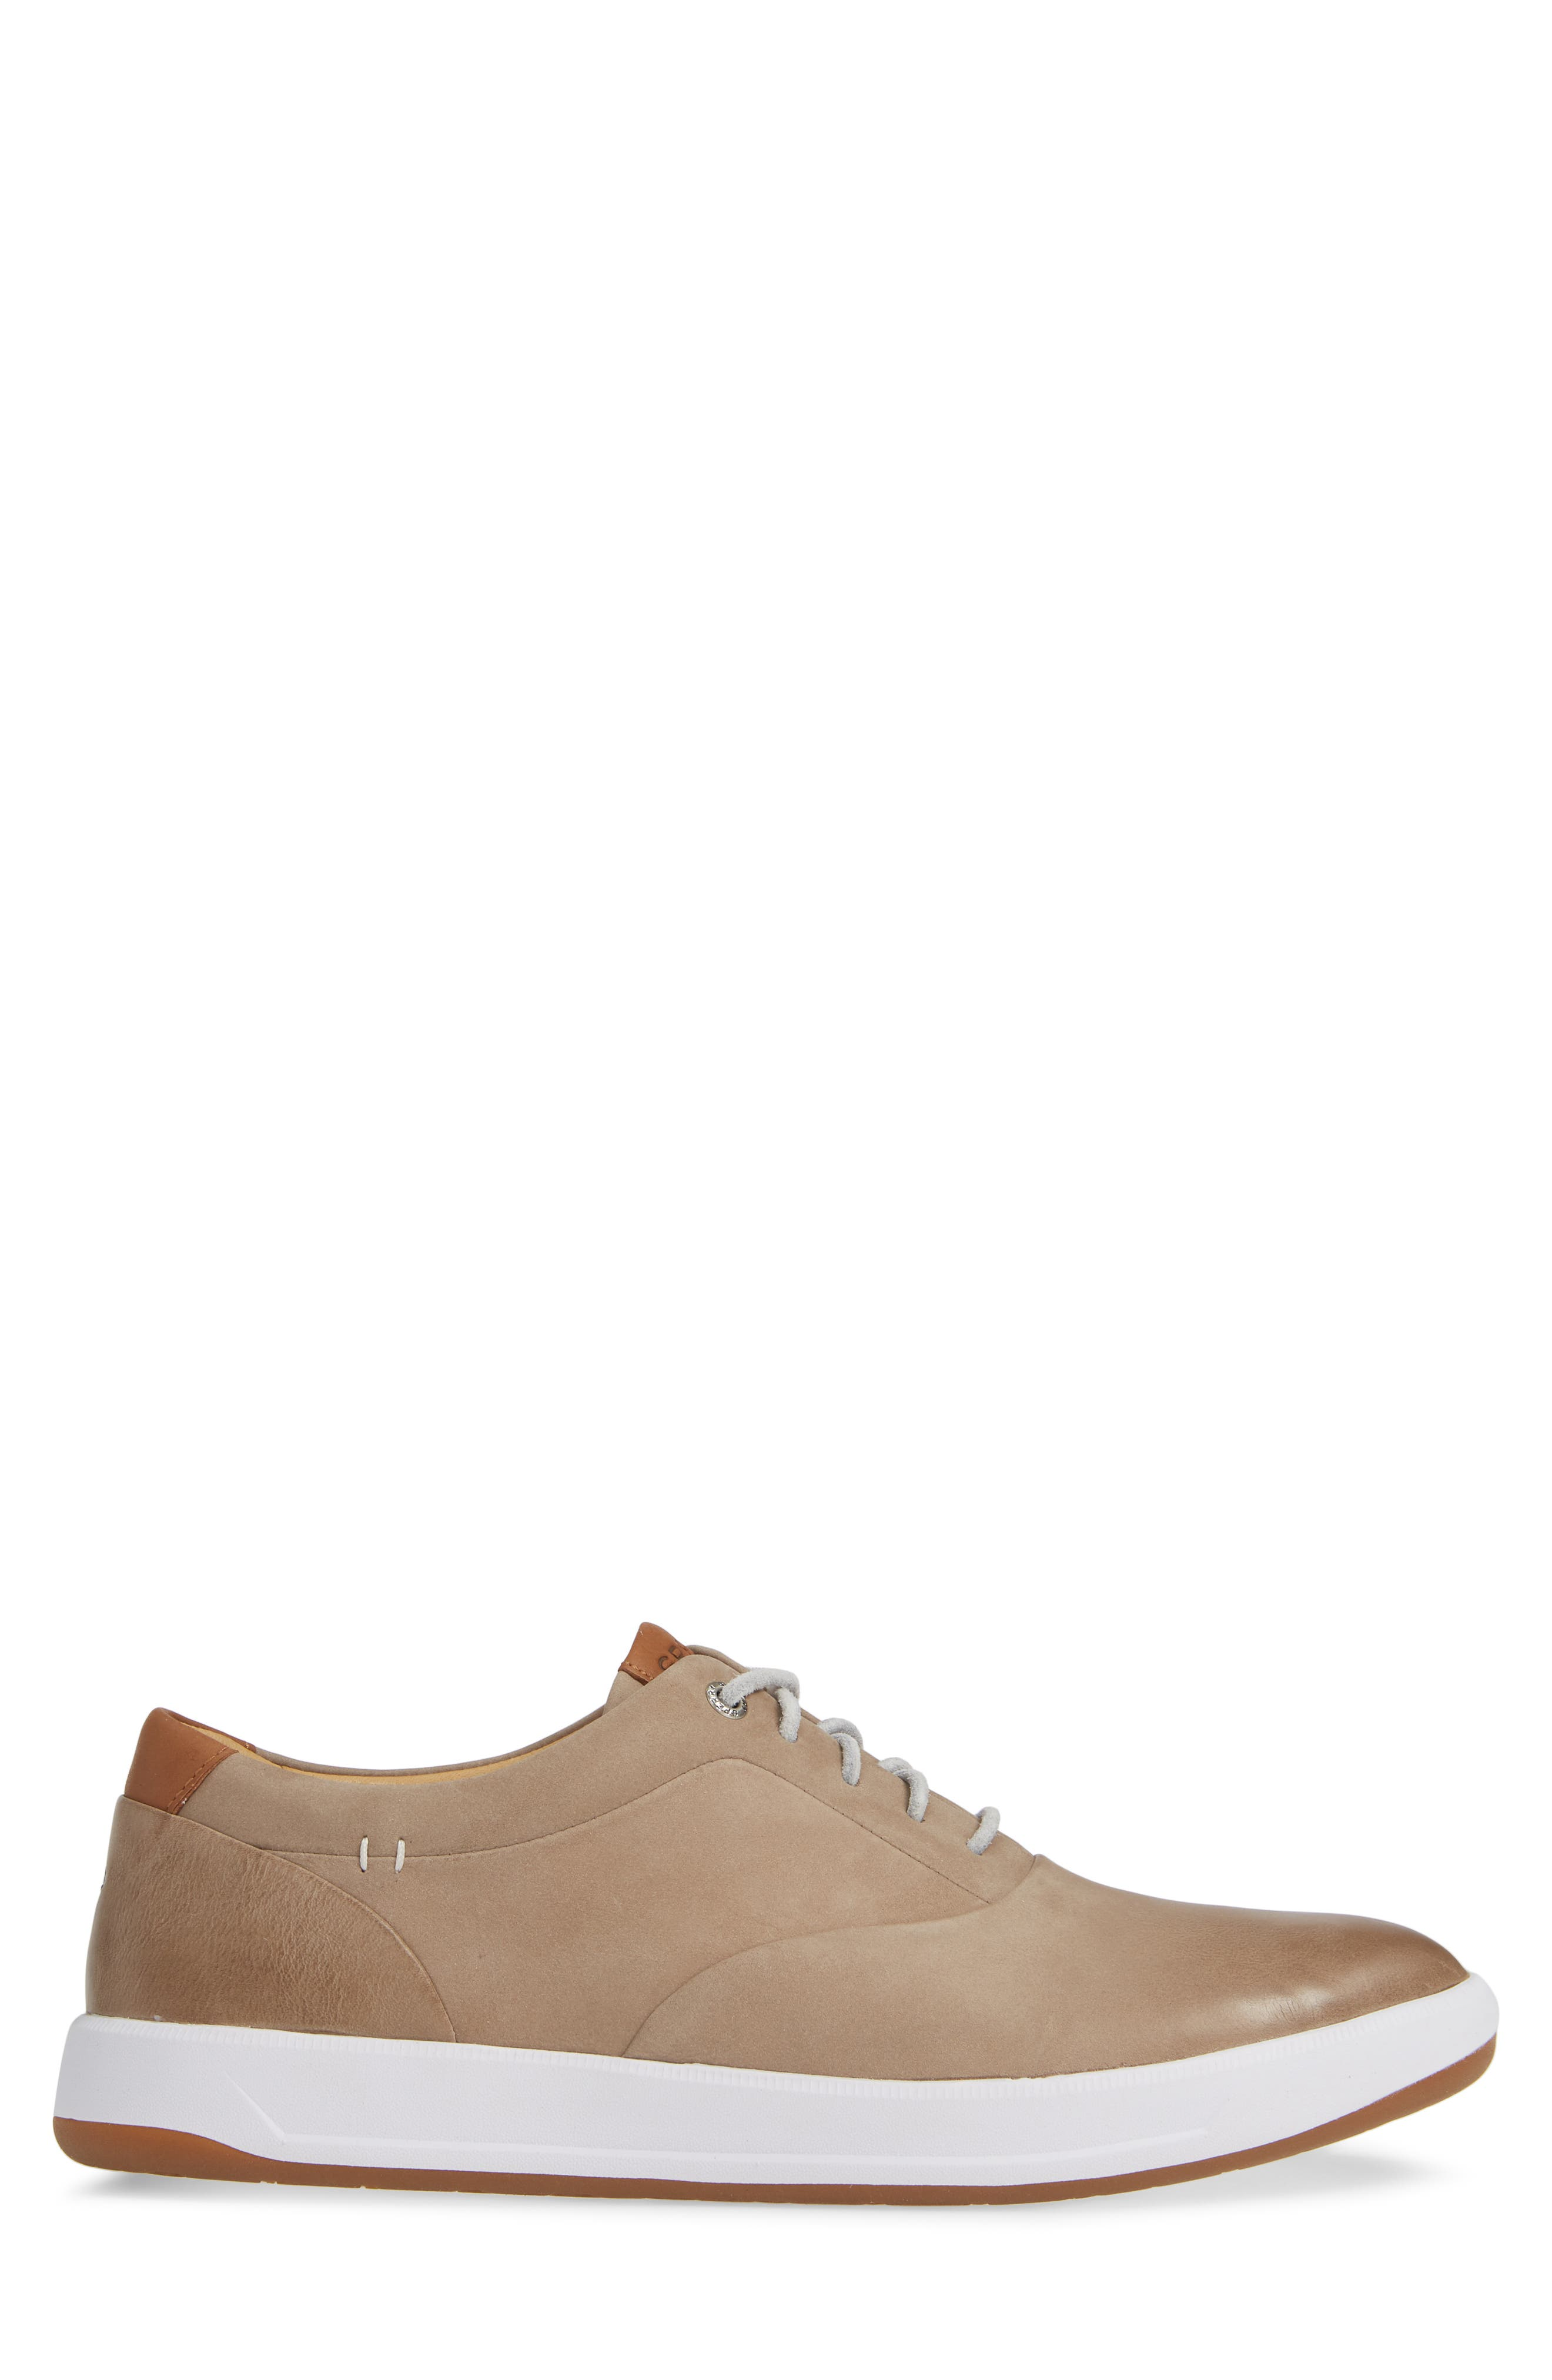 Gold Cup Richfield CVO Sneaker,                             Alternate thumbnail 3, color,                             250